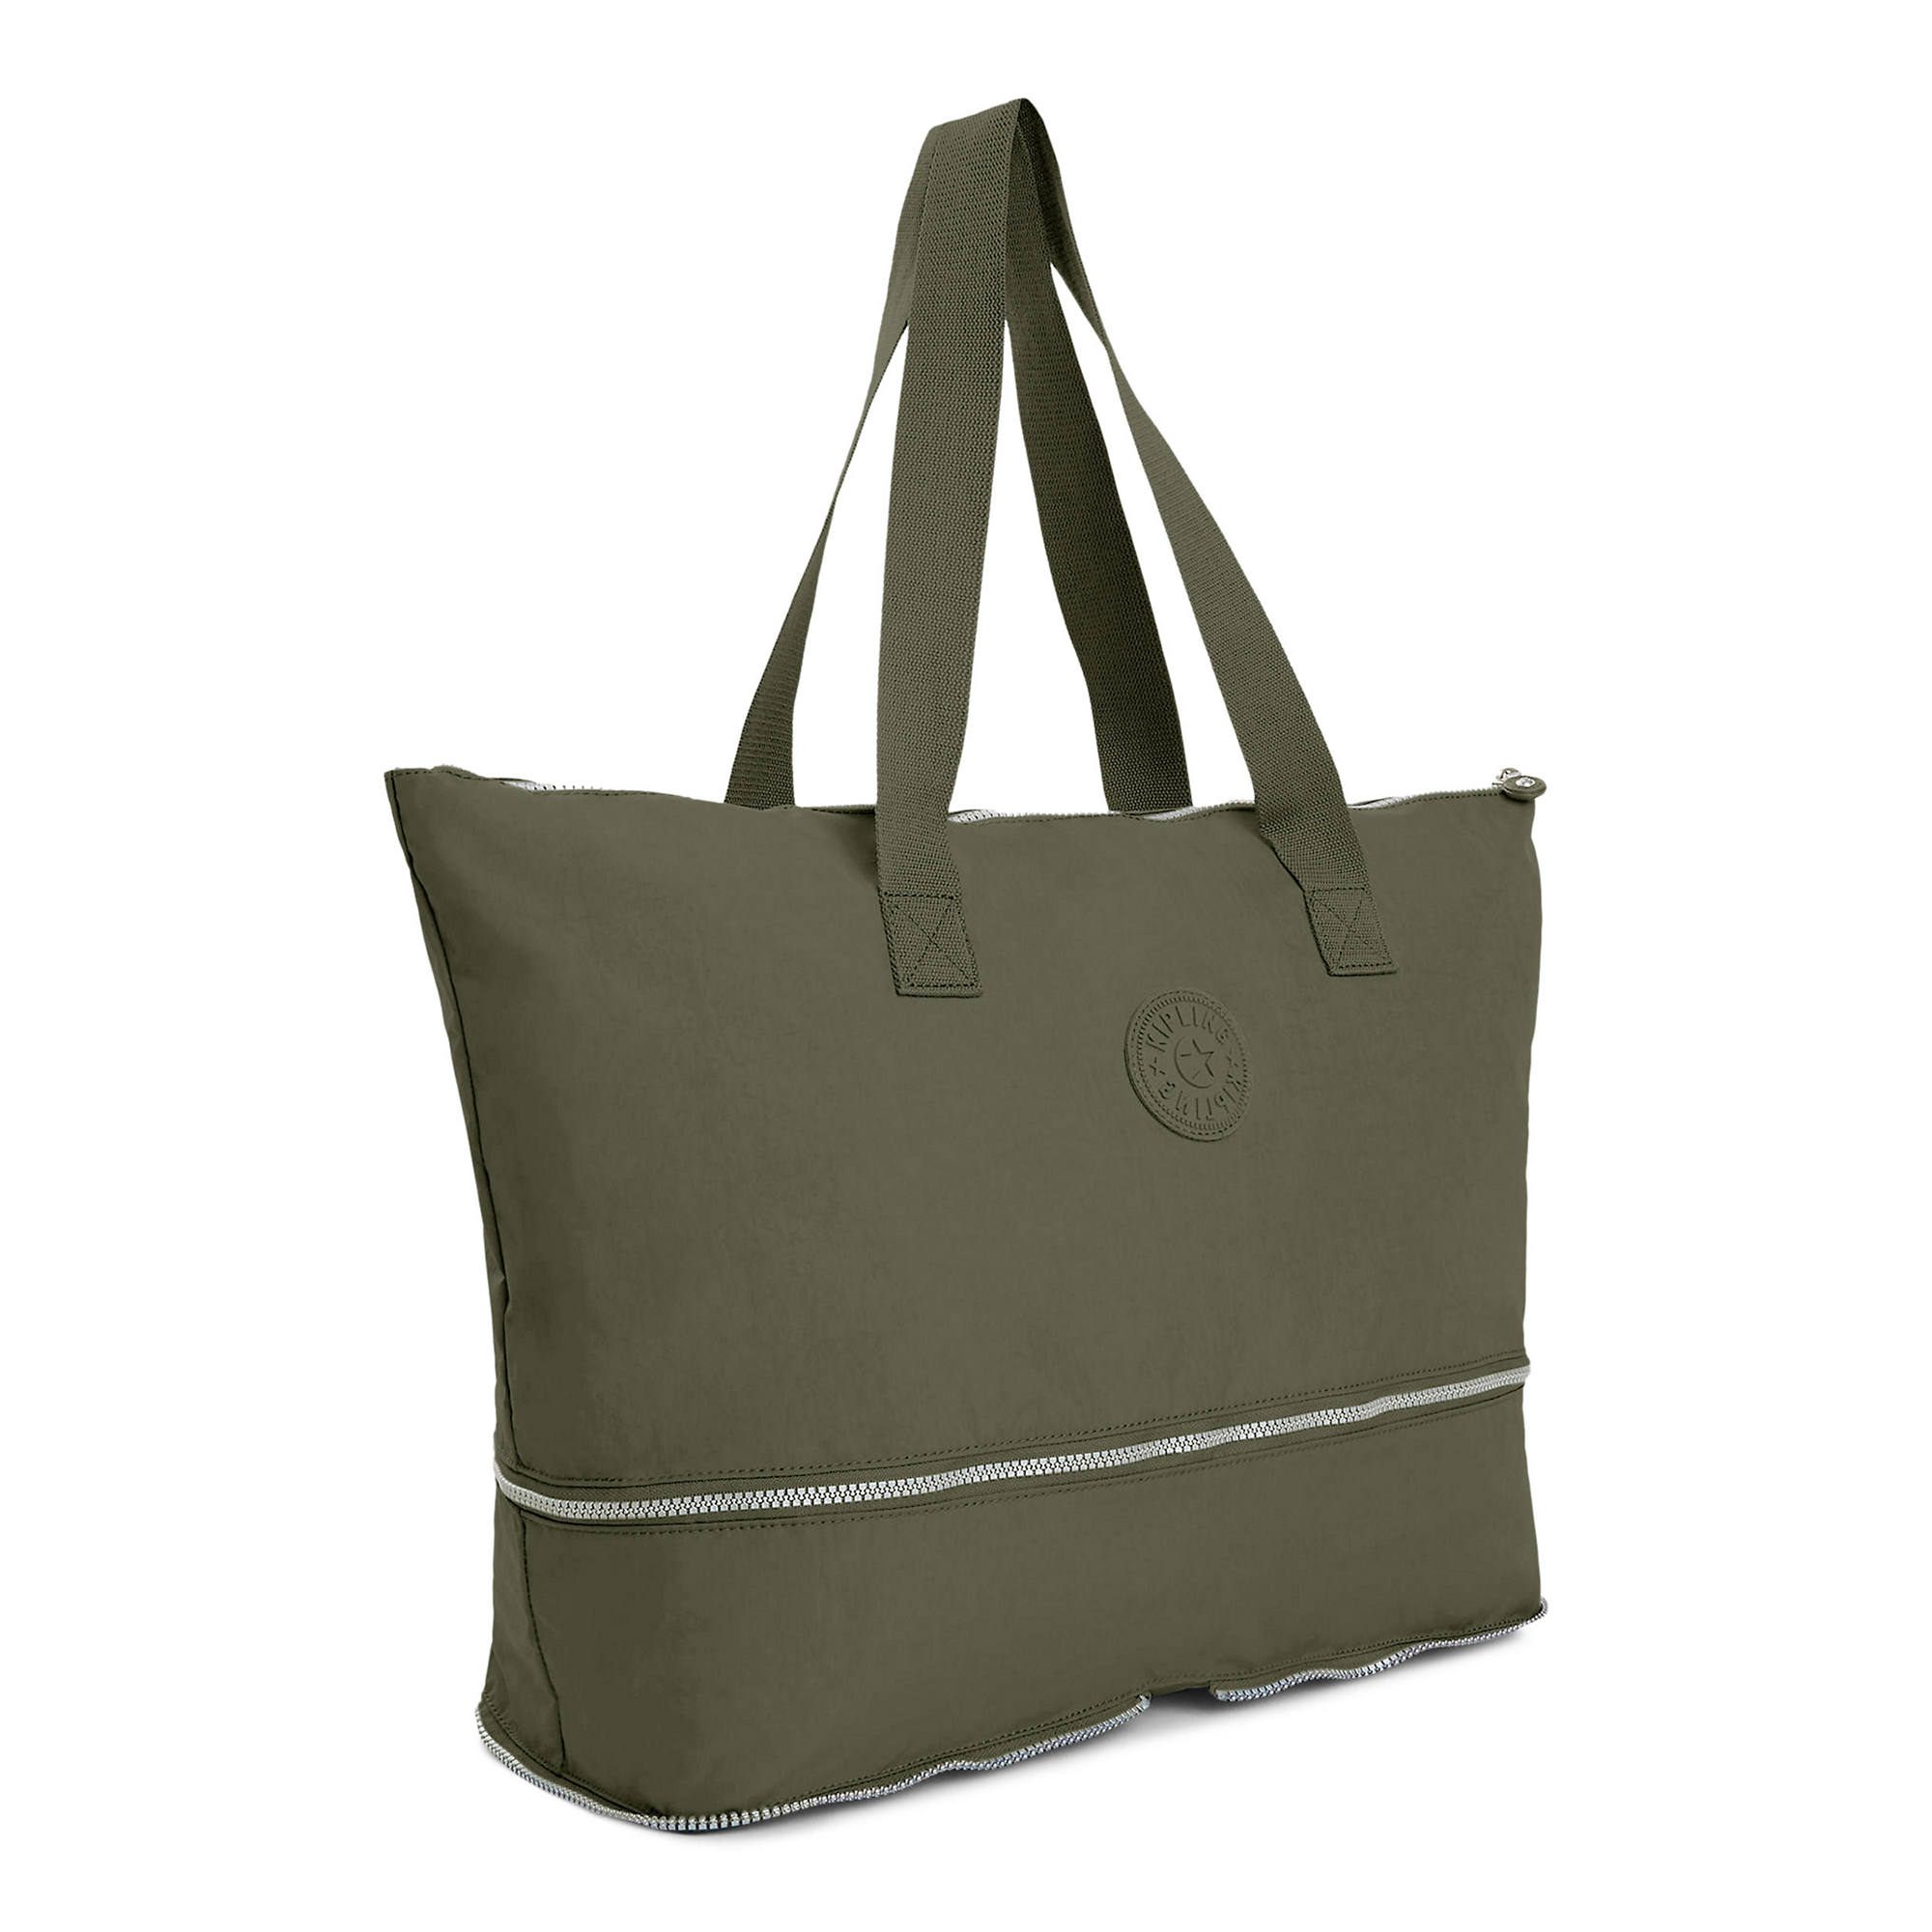 Imagine Foldable Tote Bag Jaded Green Large